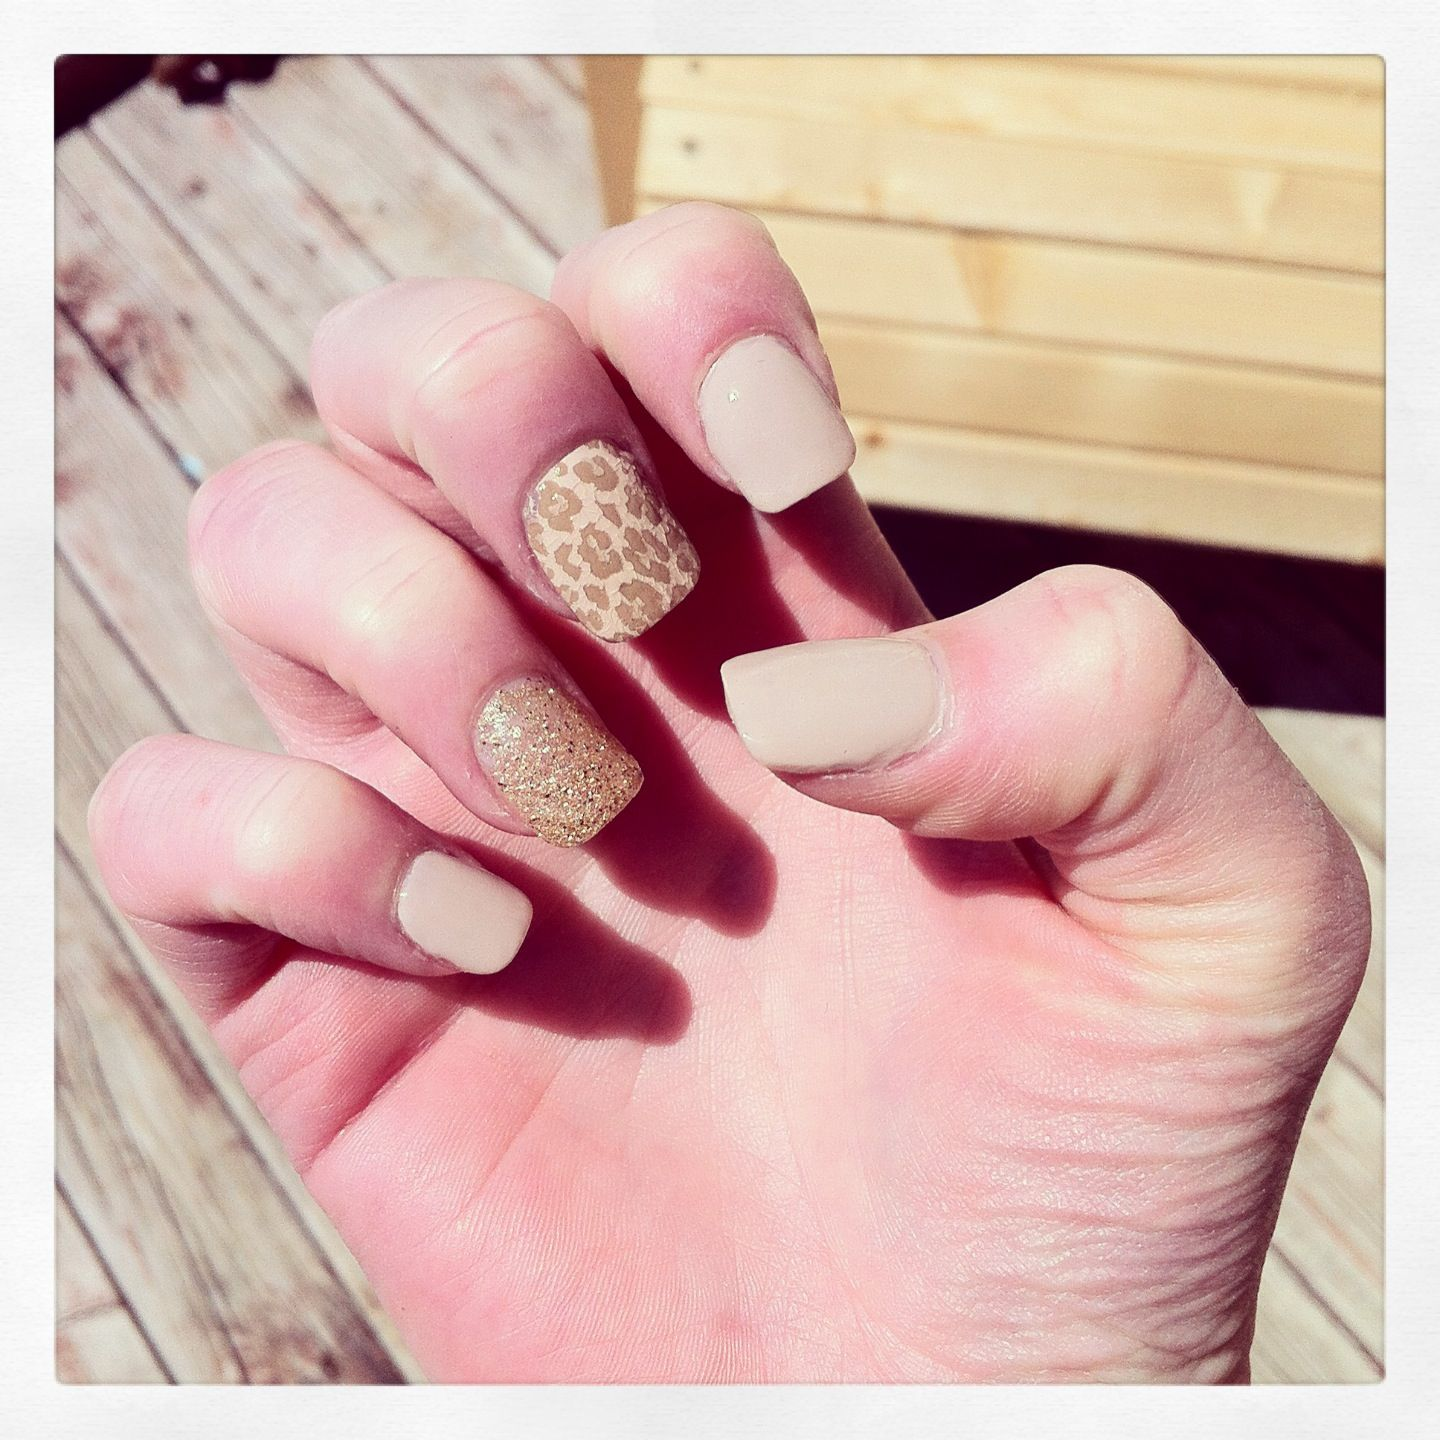 essie nail stickers | Oh....so polished! | Pinterest | Nail stickers ...